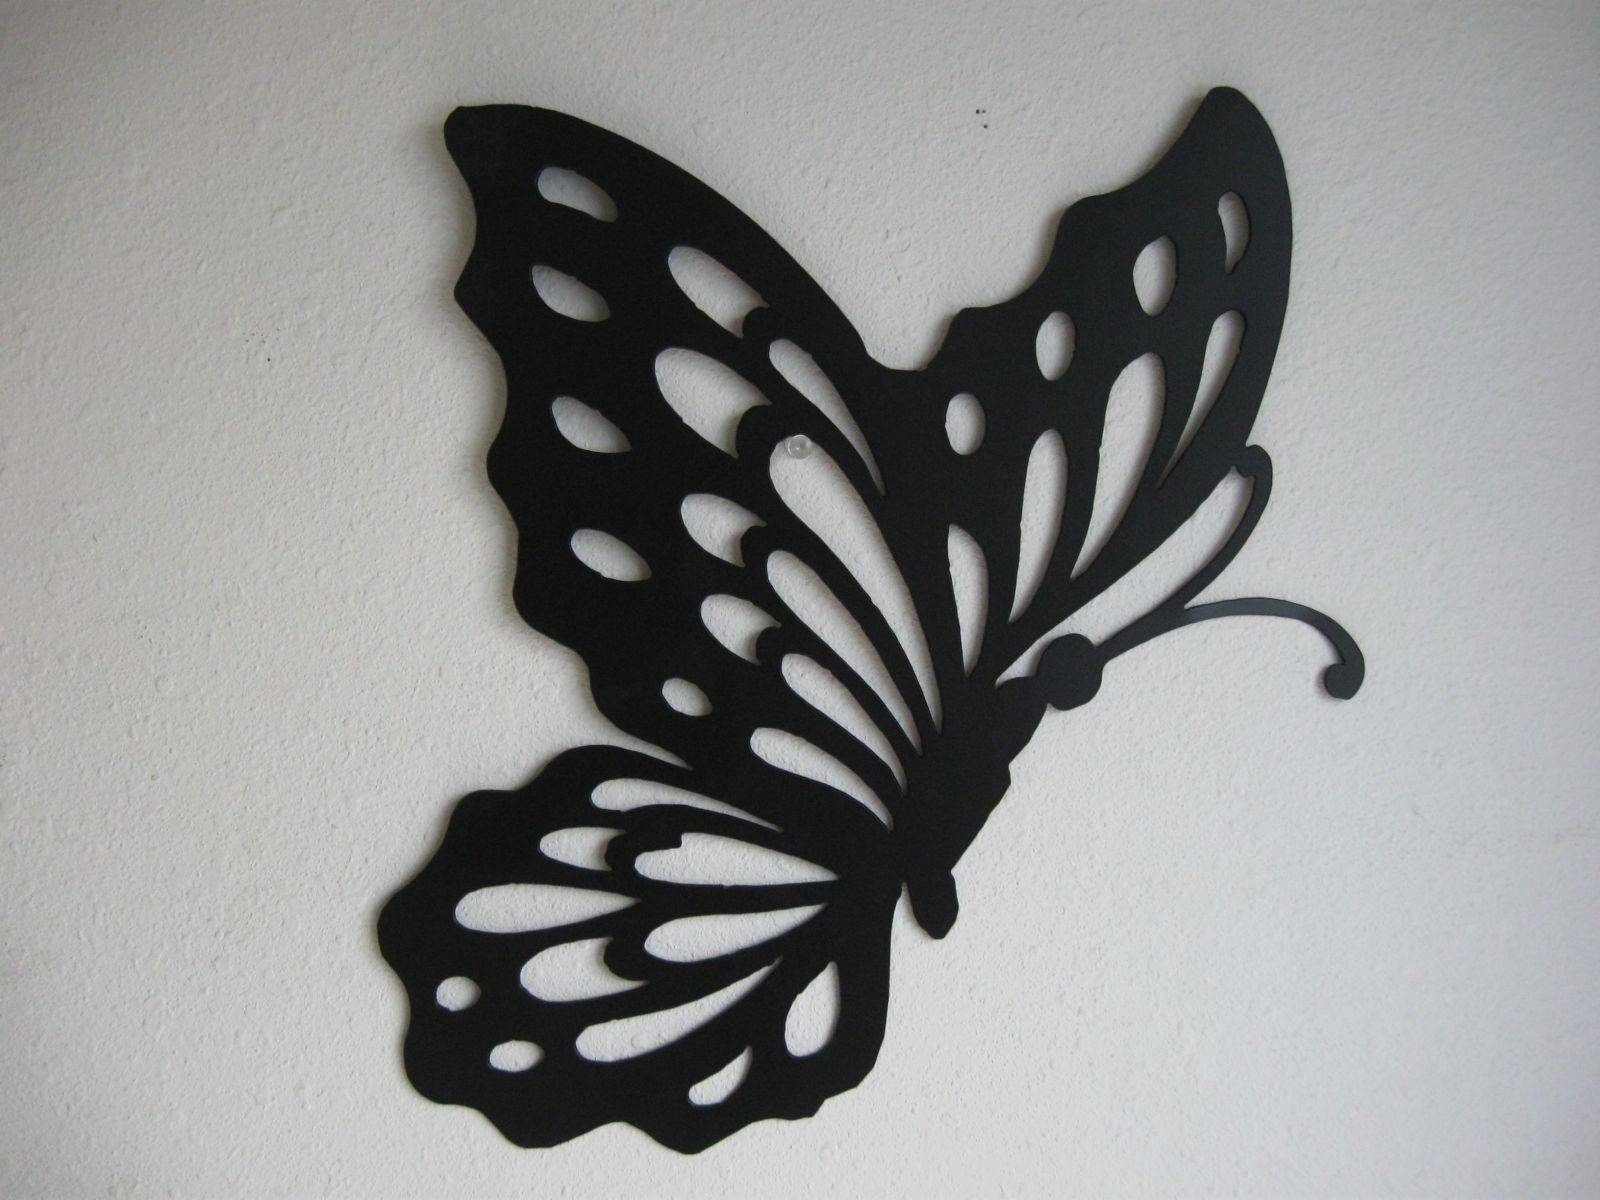 Metal Butterfly Wall Decor — Creative Home Decoration Inside 2018 Butterfly Metal Wall Art (View 8 of 20)